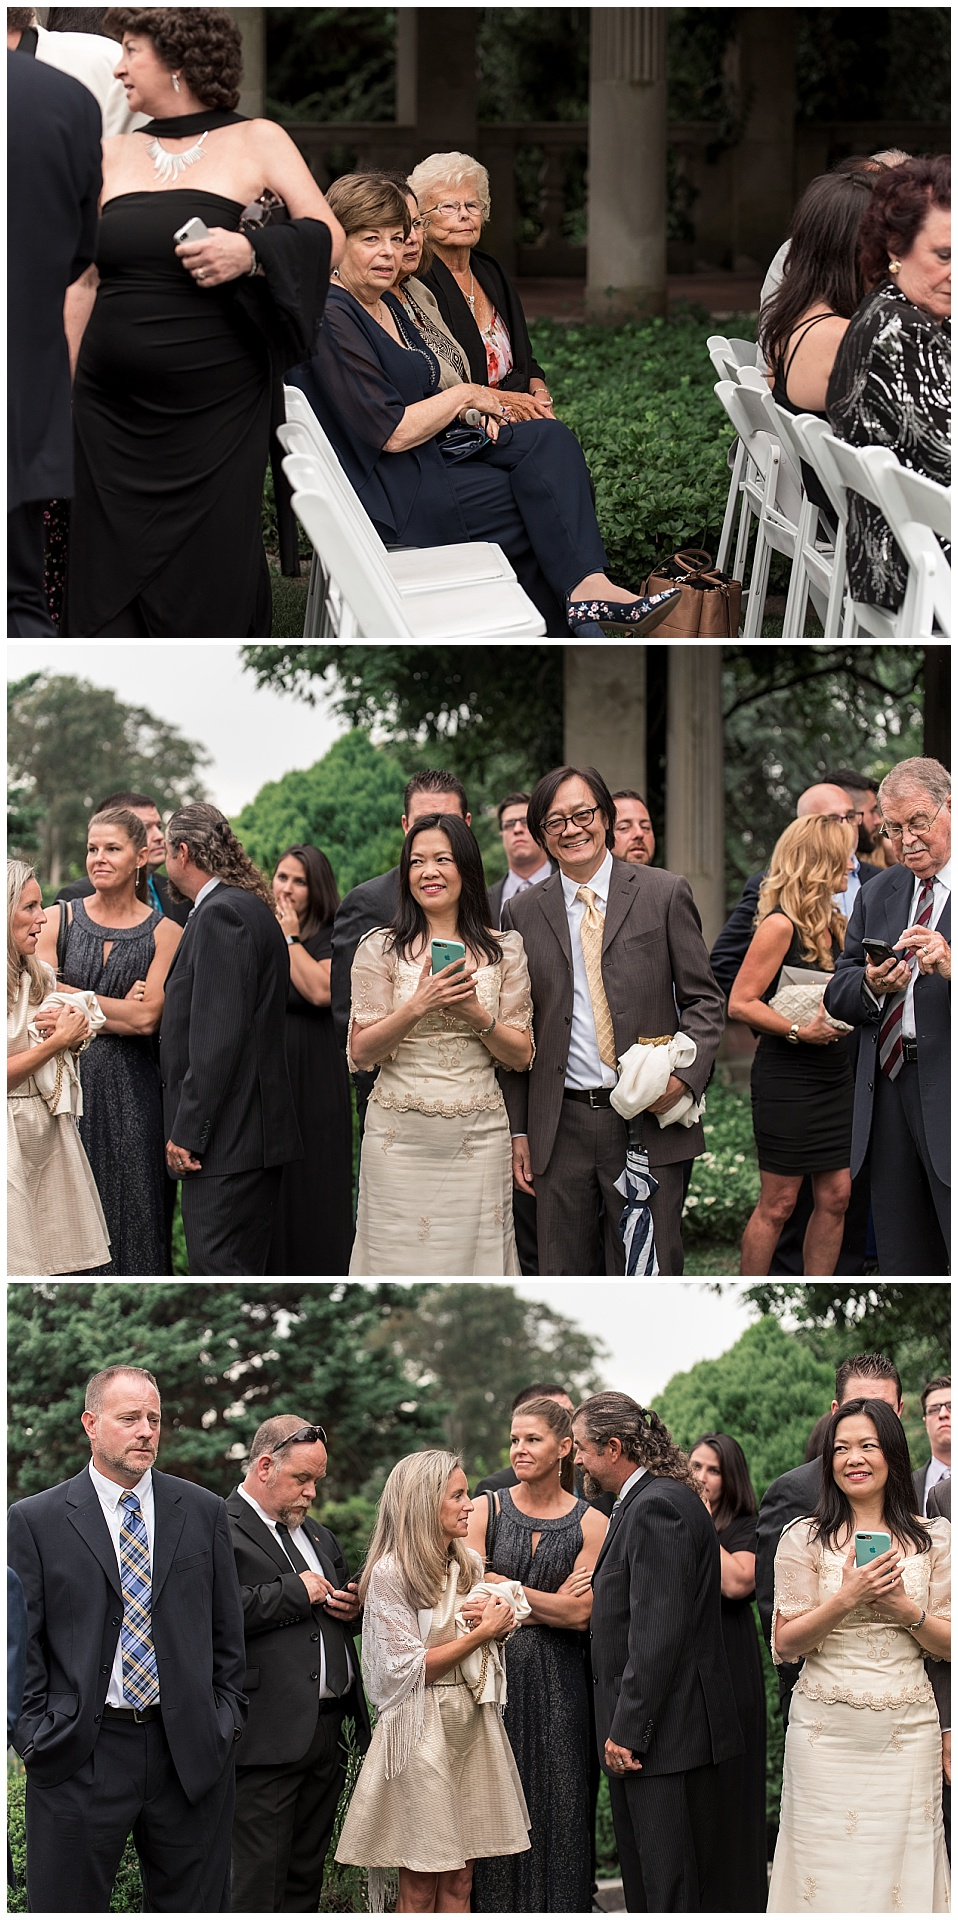 wedding guest in garden at Eolia Mansion at Harkness Park CT wedding photography